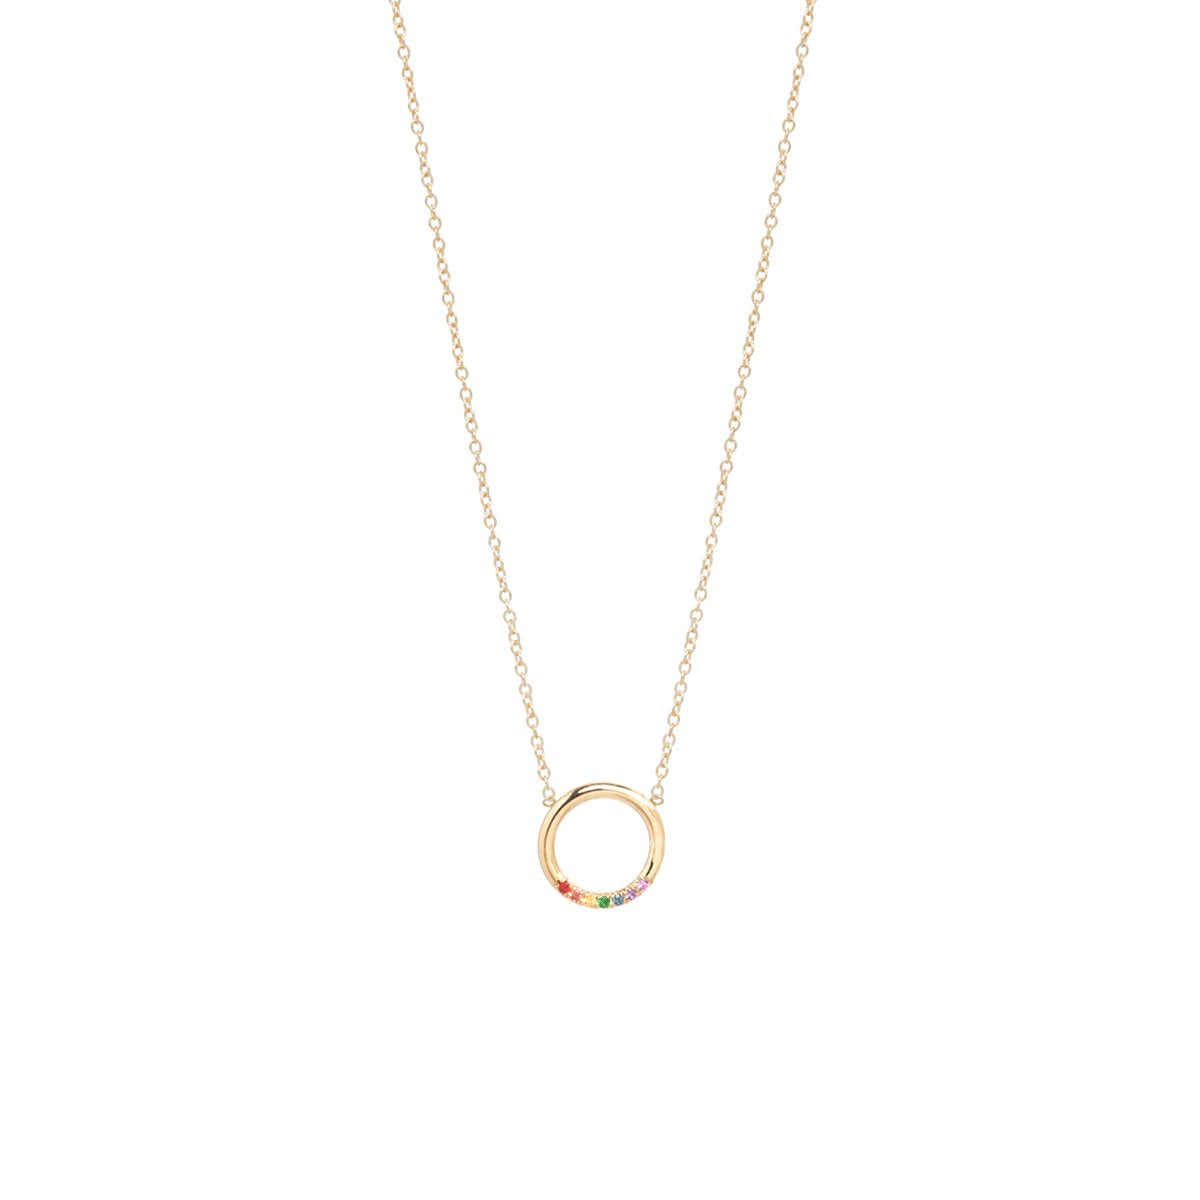 Zoe Chicco 14K Gold Thick Circle Necklace With 7 Rainbow Sapphires